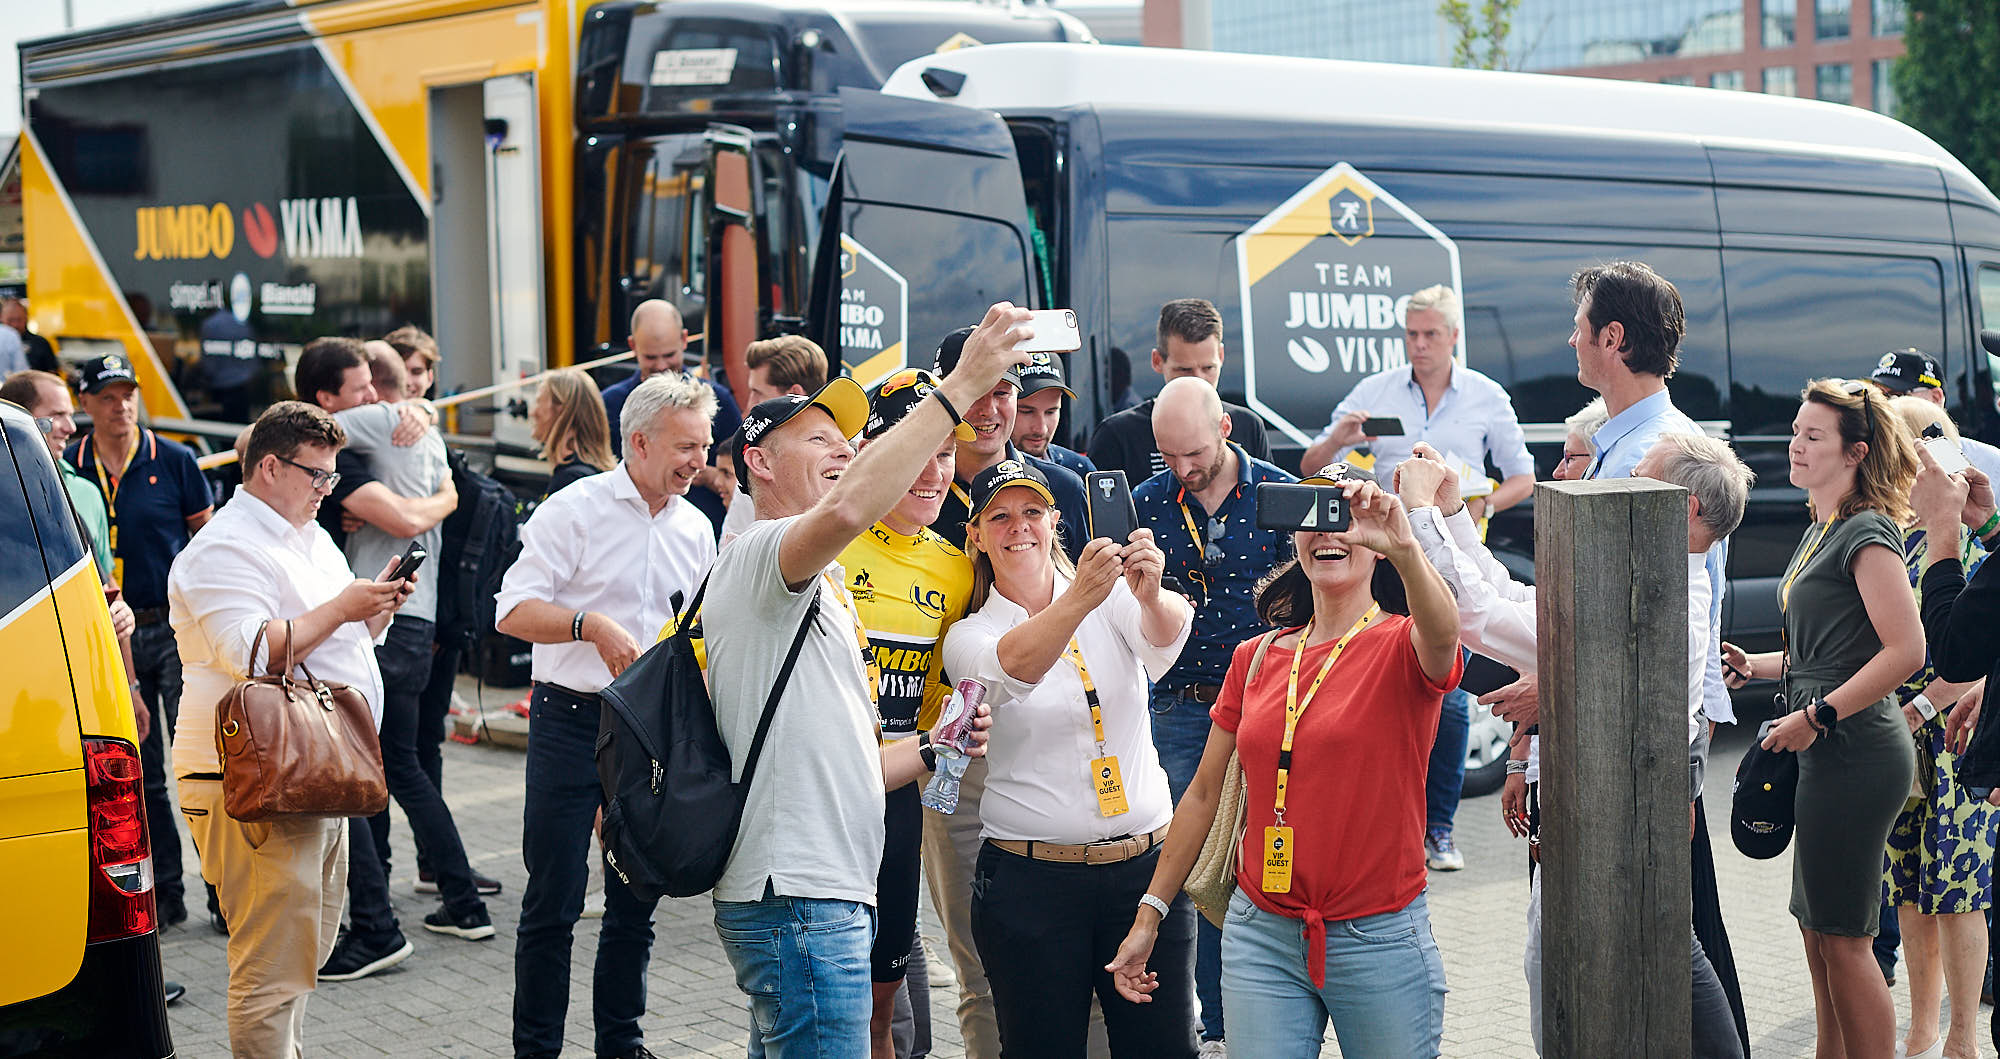 Fans taking their photo with Tour de France stage victor Mike Teunissen